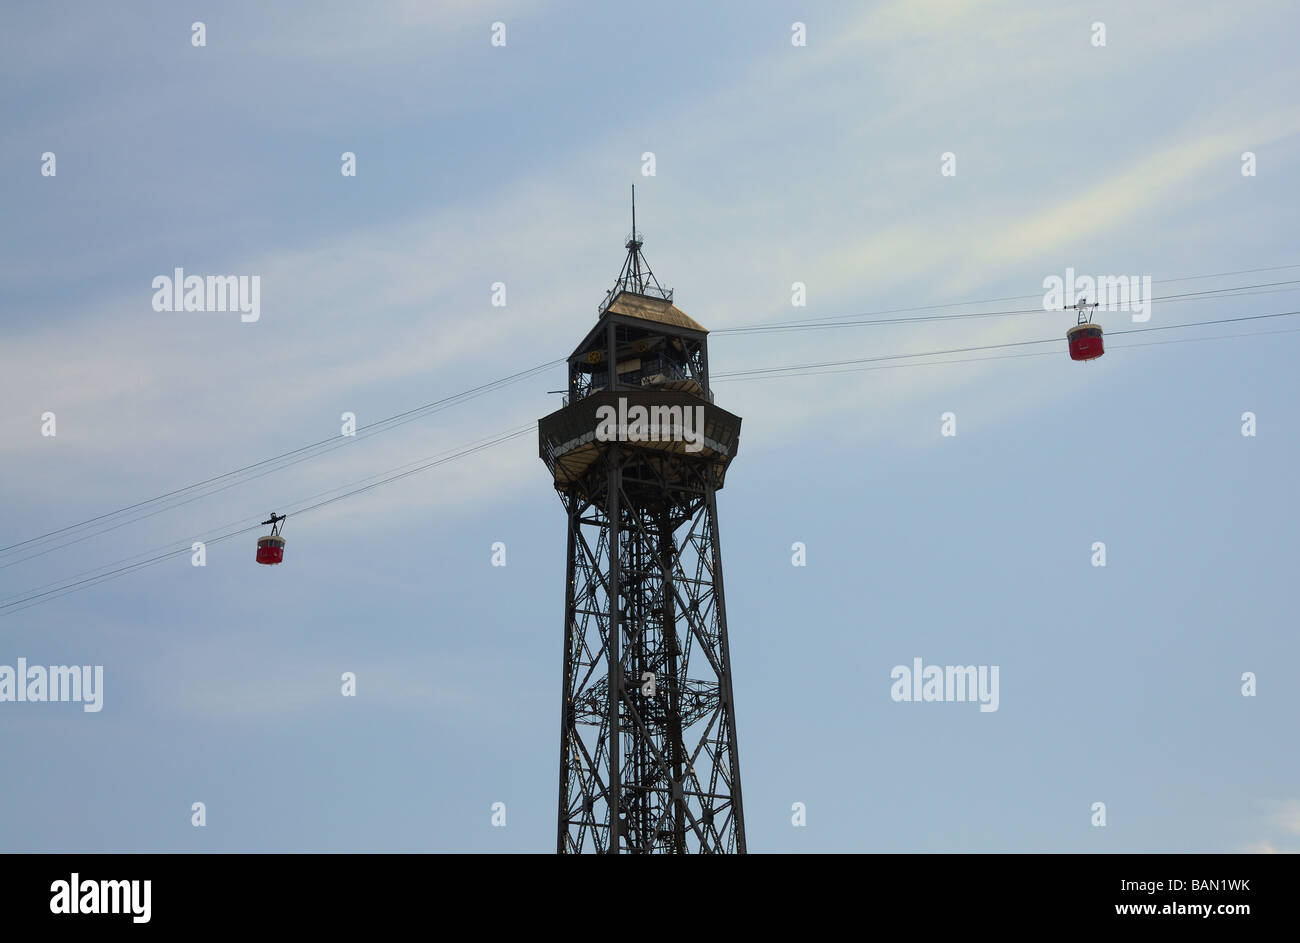 Cablecar tower Jaume I in Barcelona, Spain - Stock Image